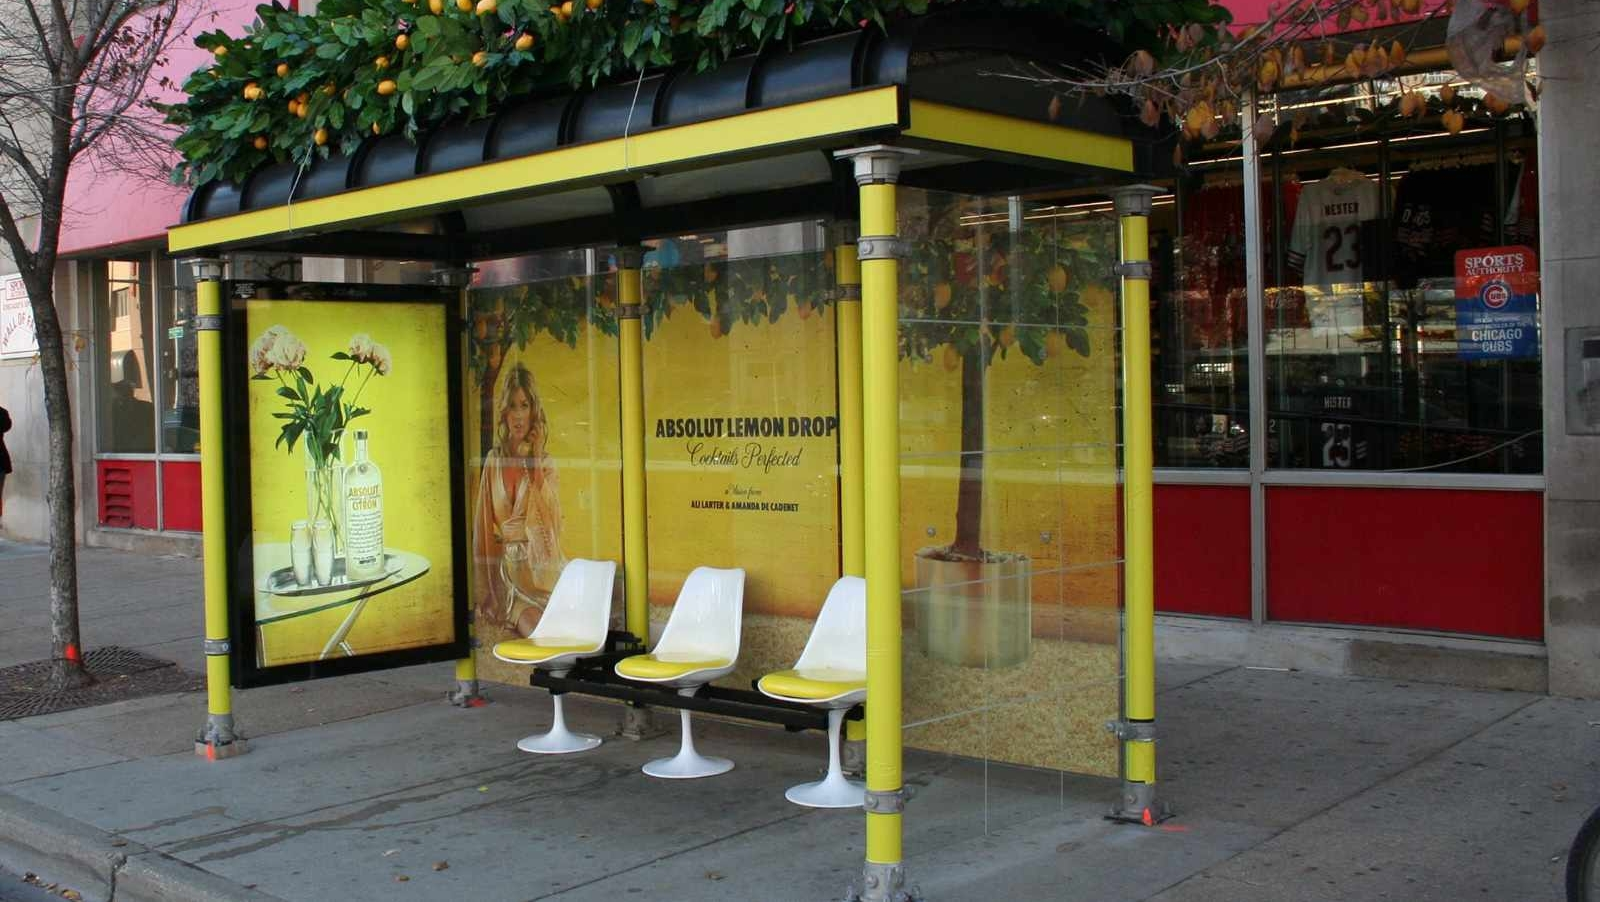 bus shelter advertising image here